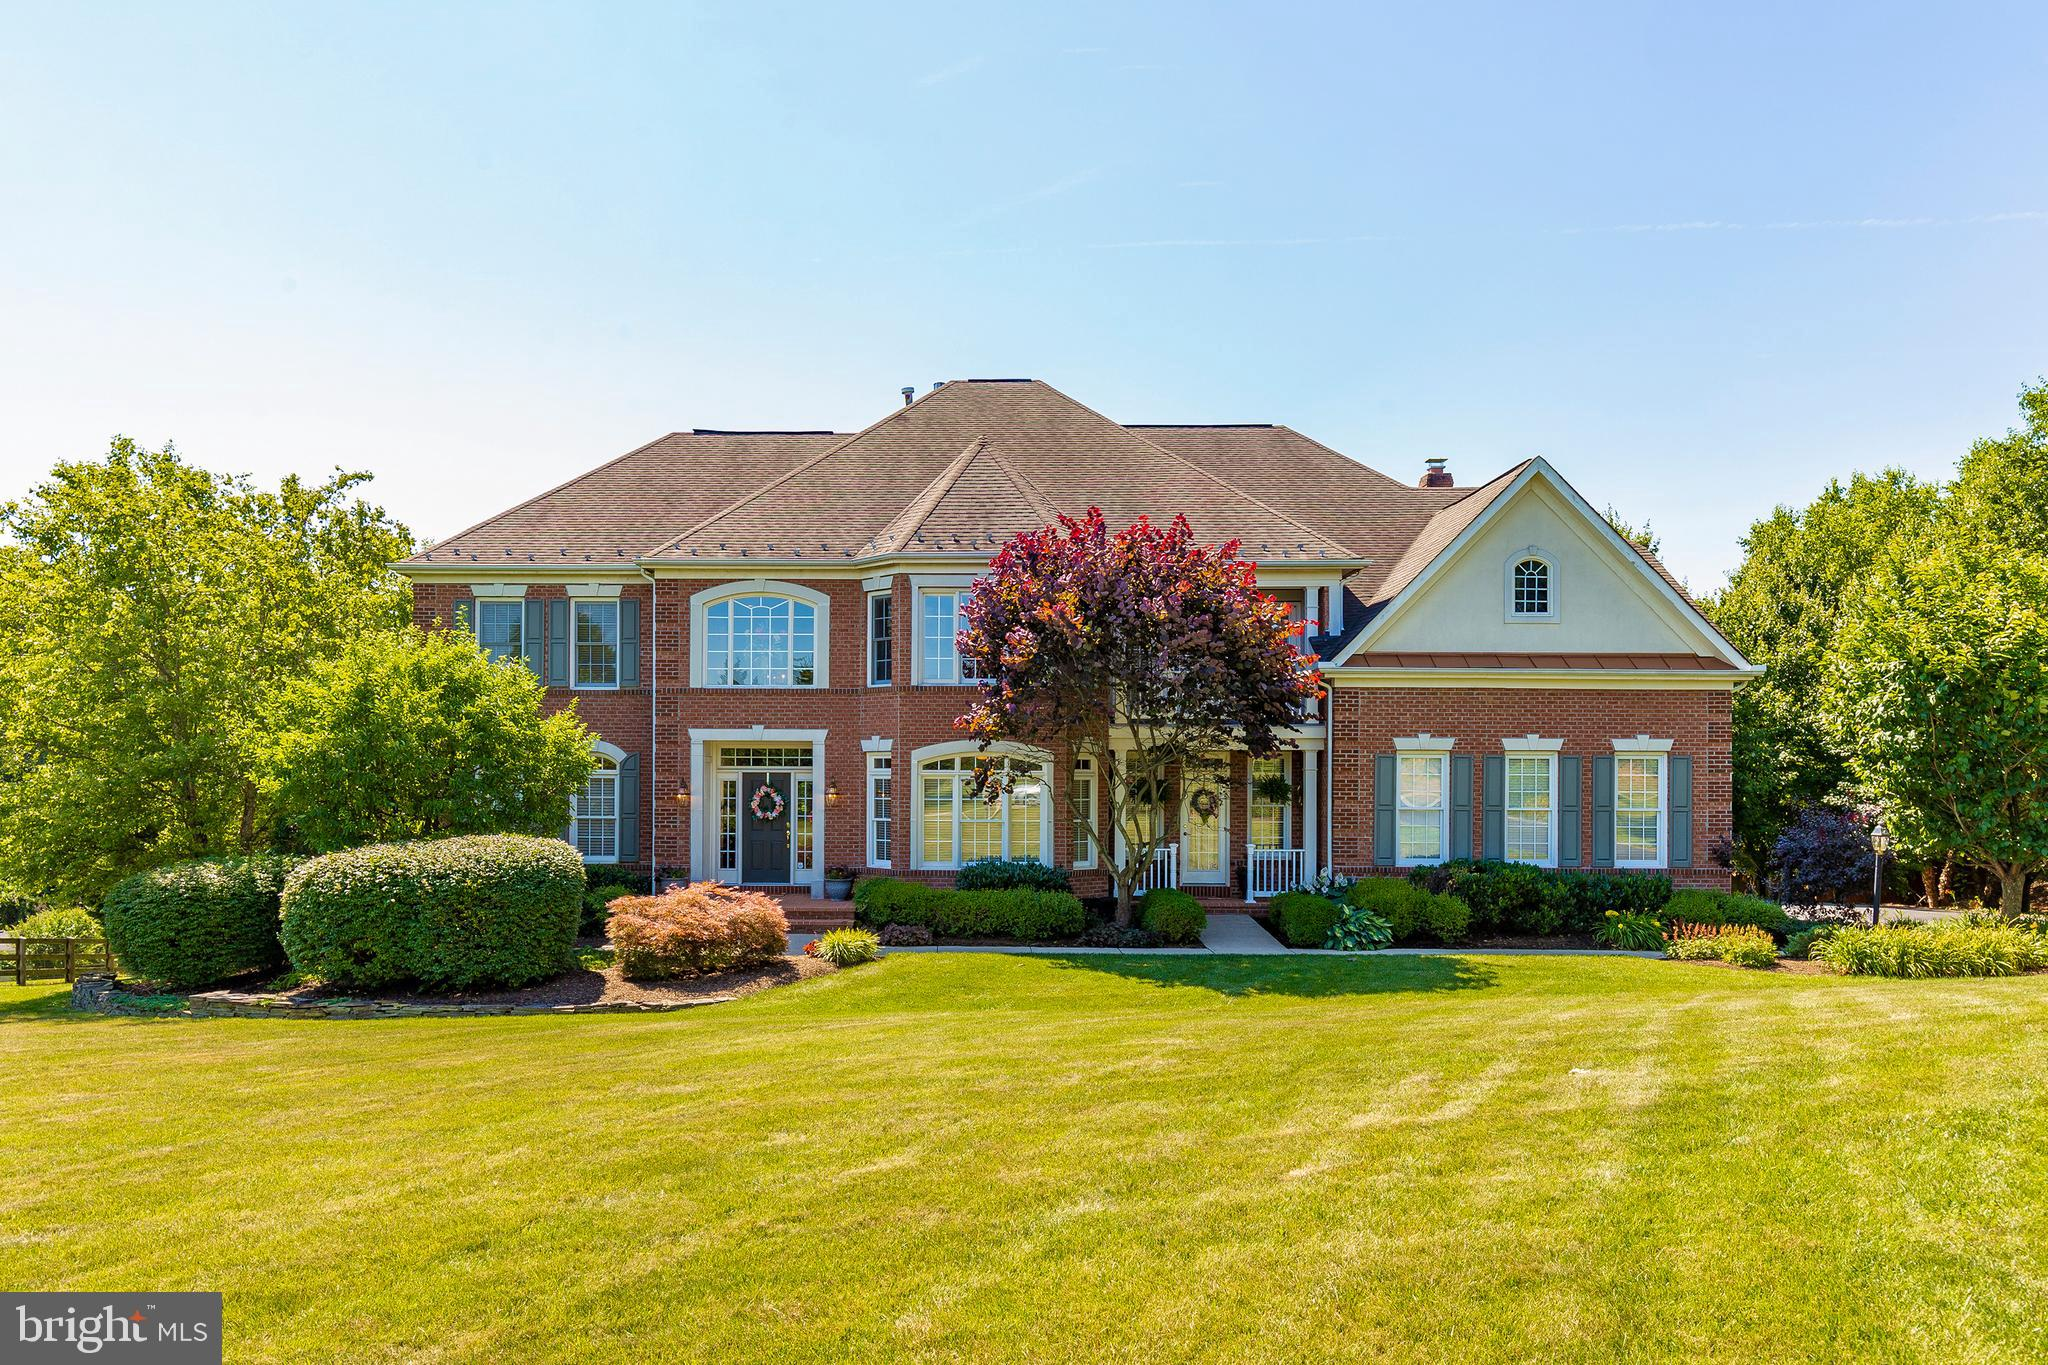 6055 MOORE DRIVE, SYKESVILLE, MD 21784